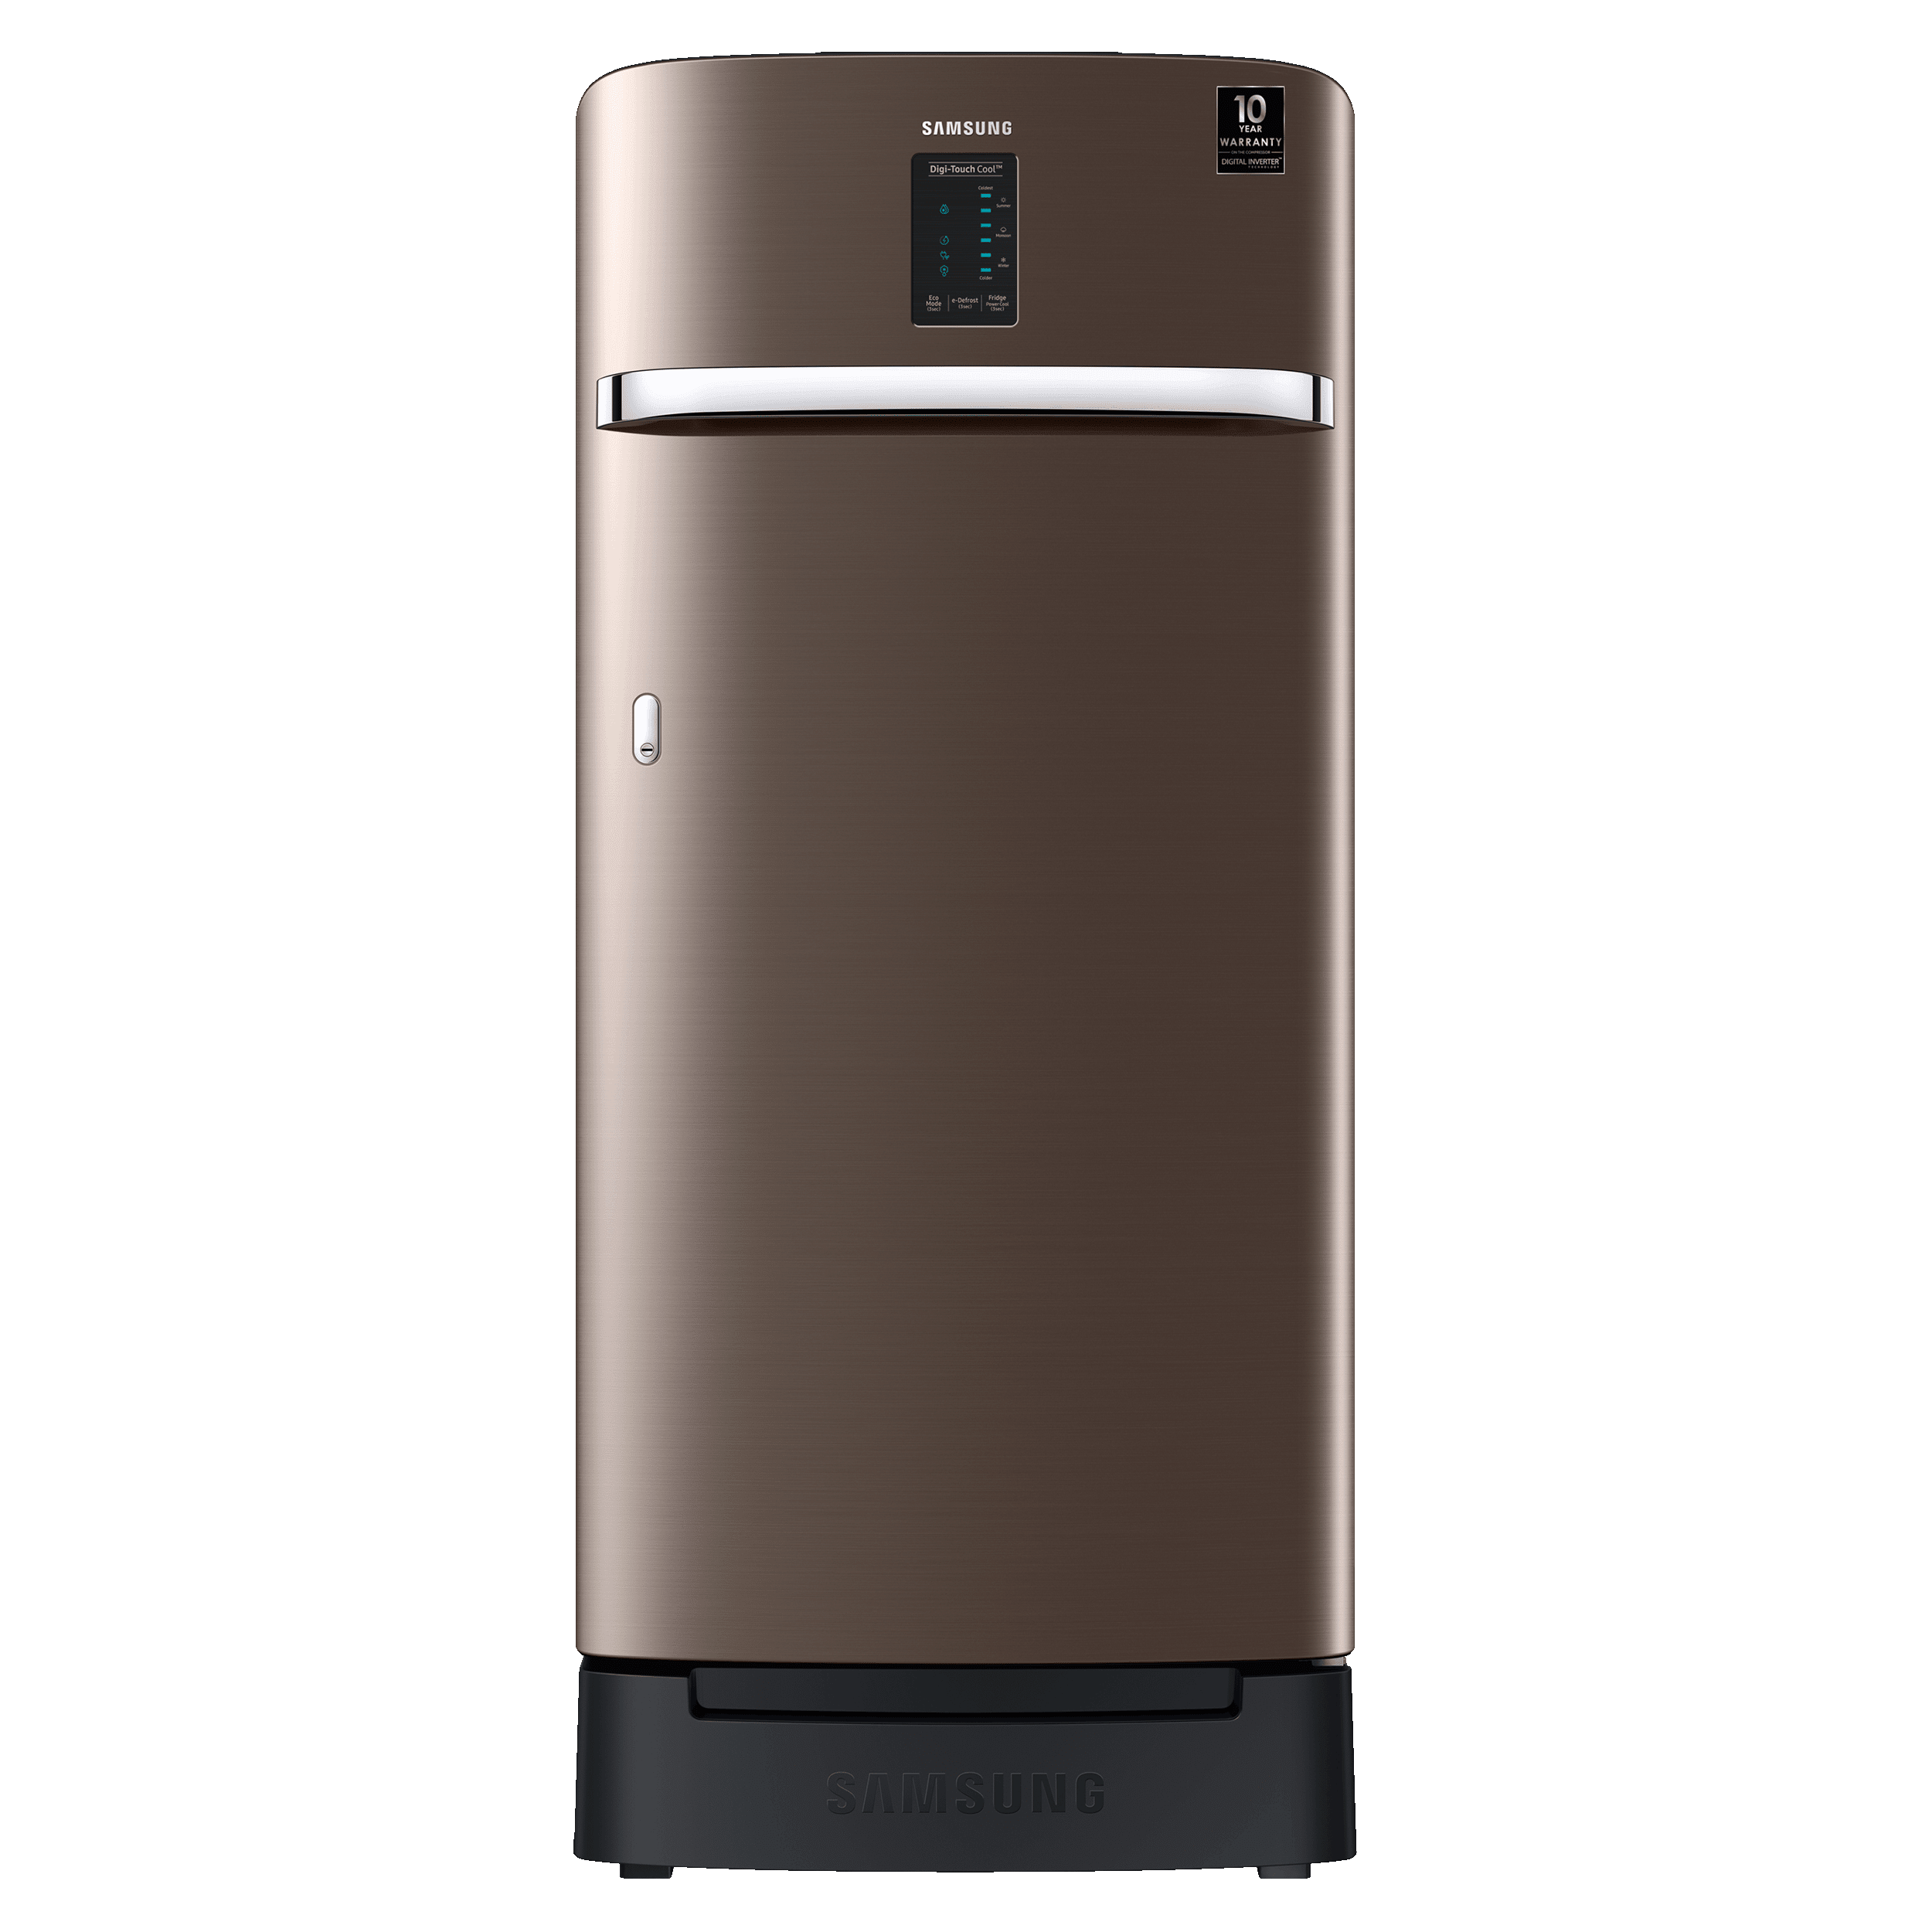 Samsung 198 Litres 3 Star Direct Cool Inverter Single Door Refrigerator (Stabilizer Free Operation, RR21A2F2YDX/HL, Luxe Brown)